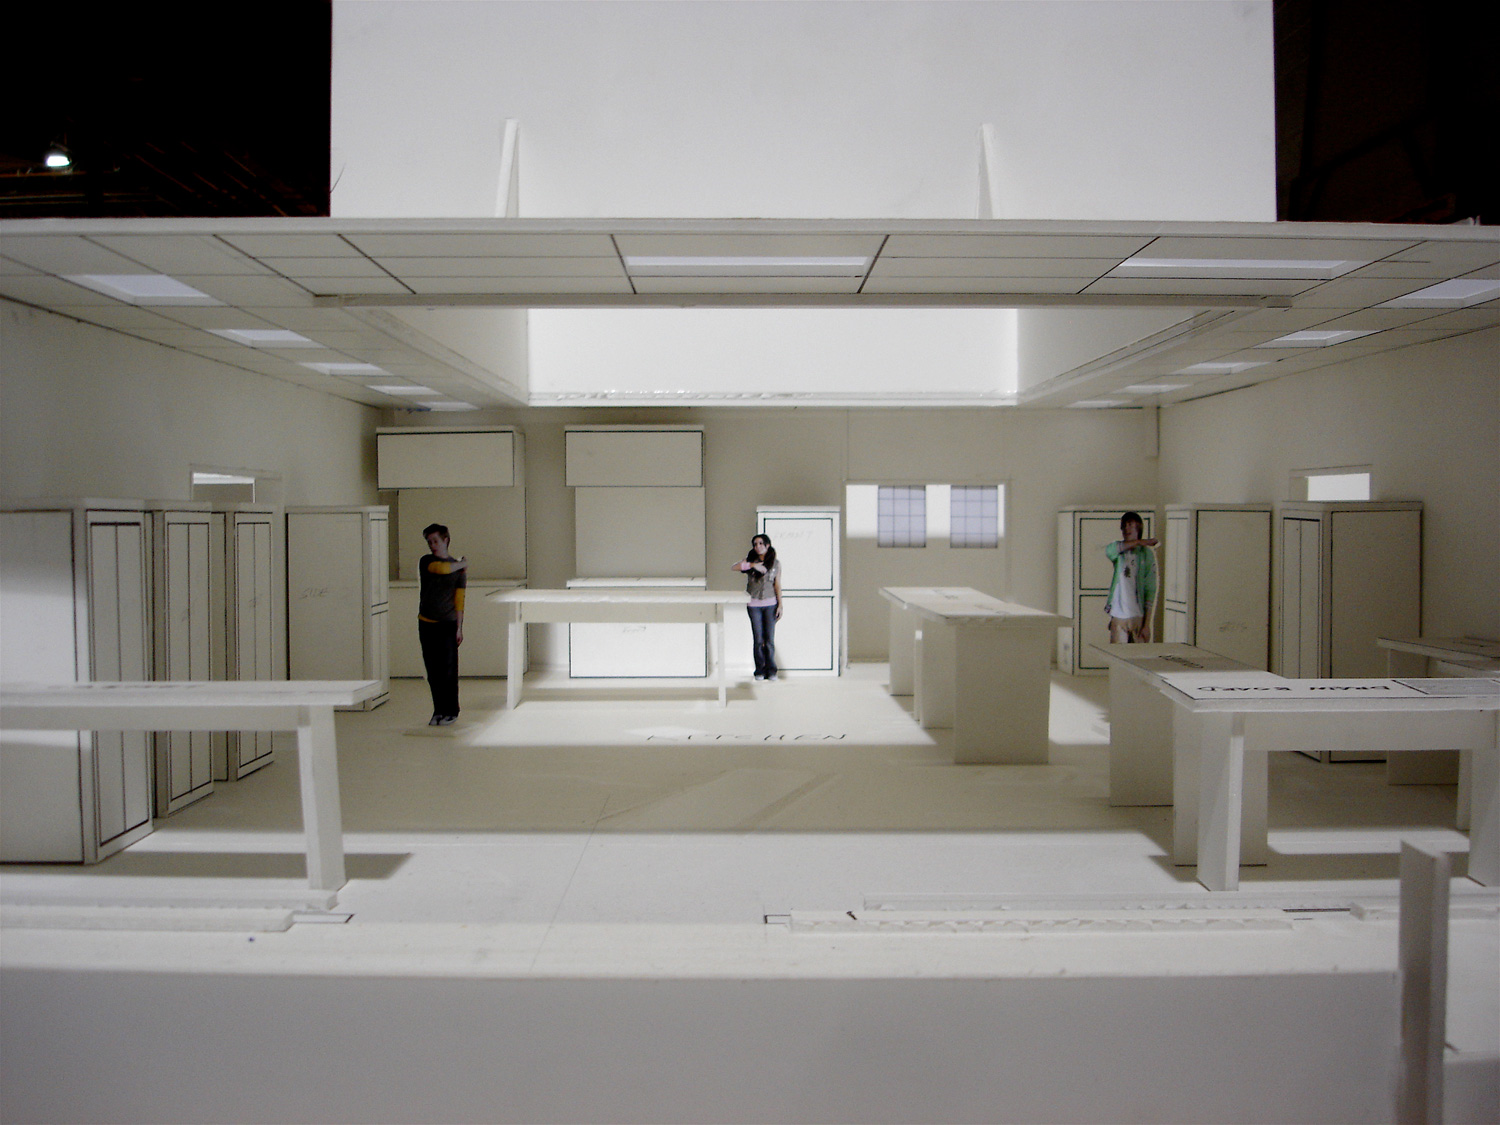 Another view of the Lava Springs kitchen stage set model for the choreographers.